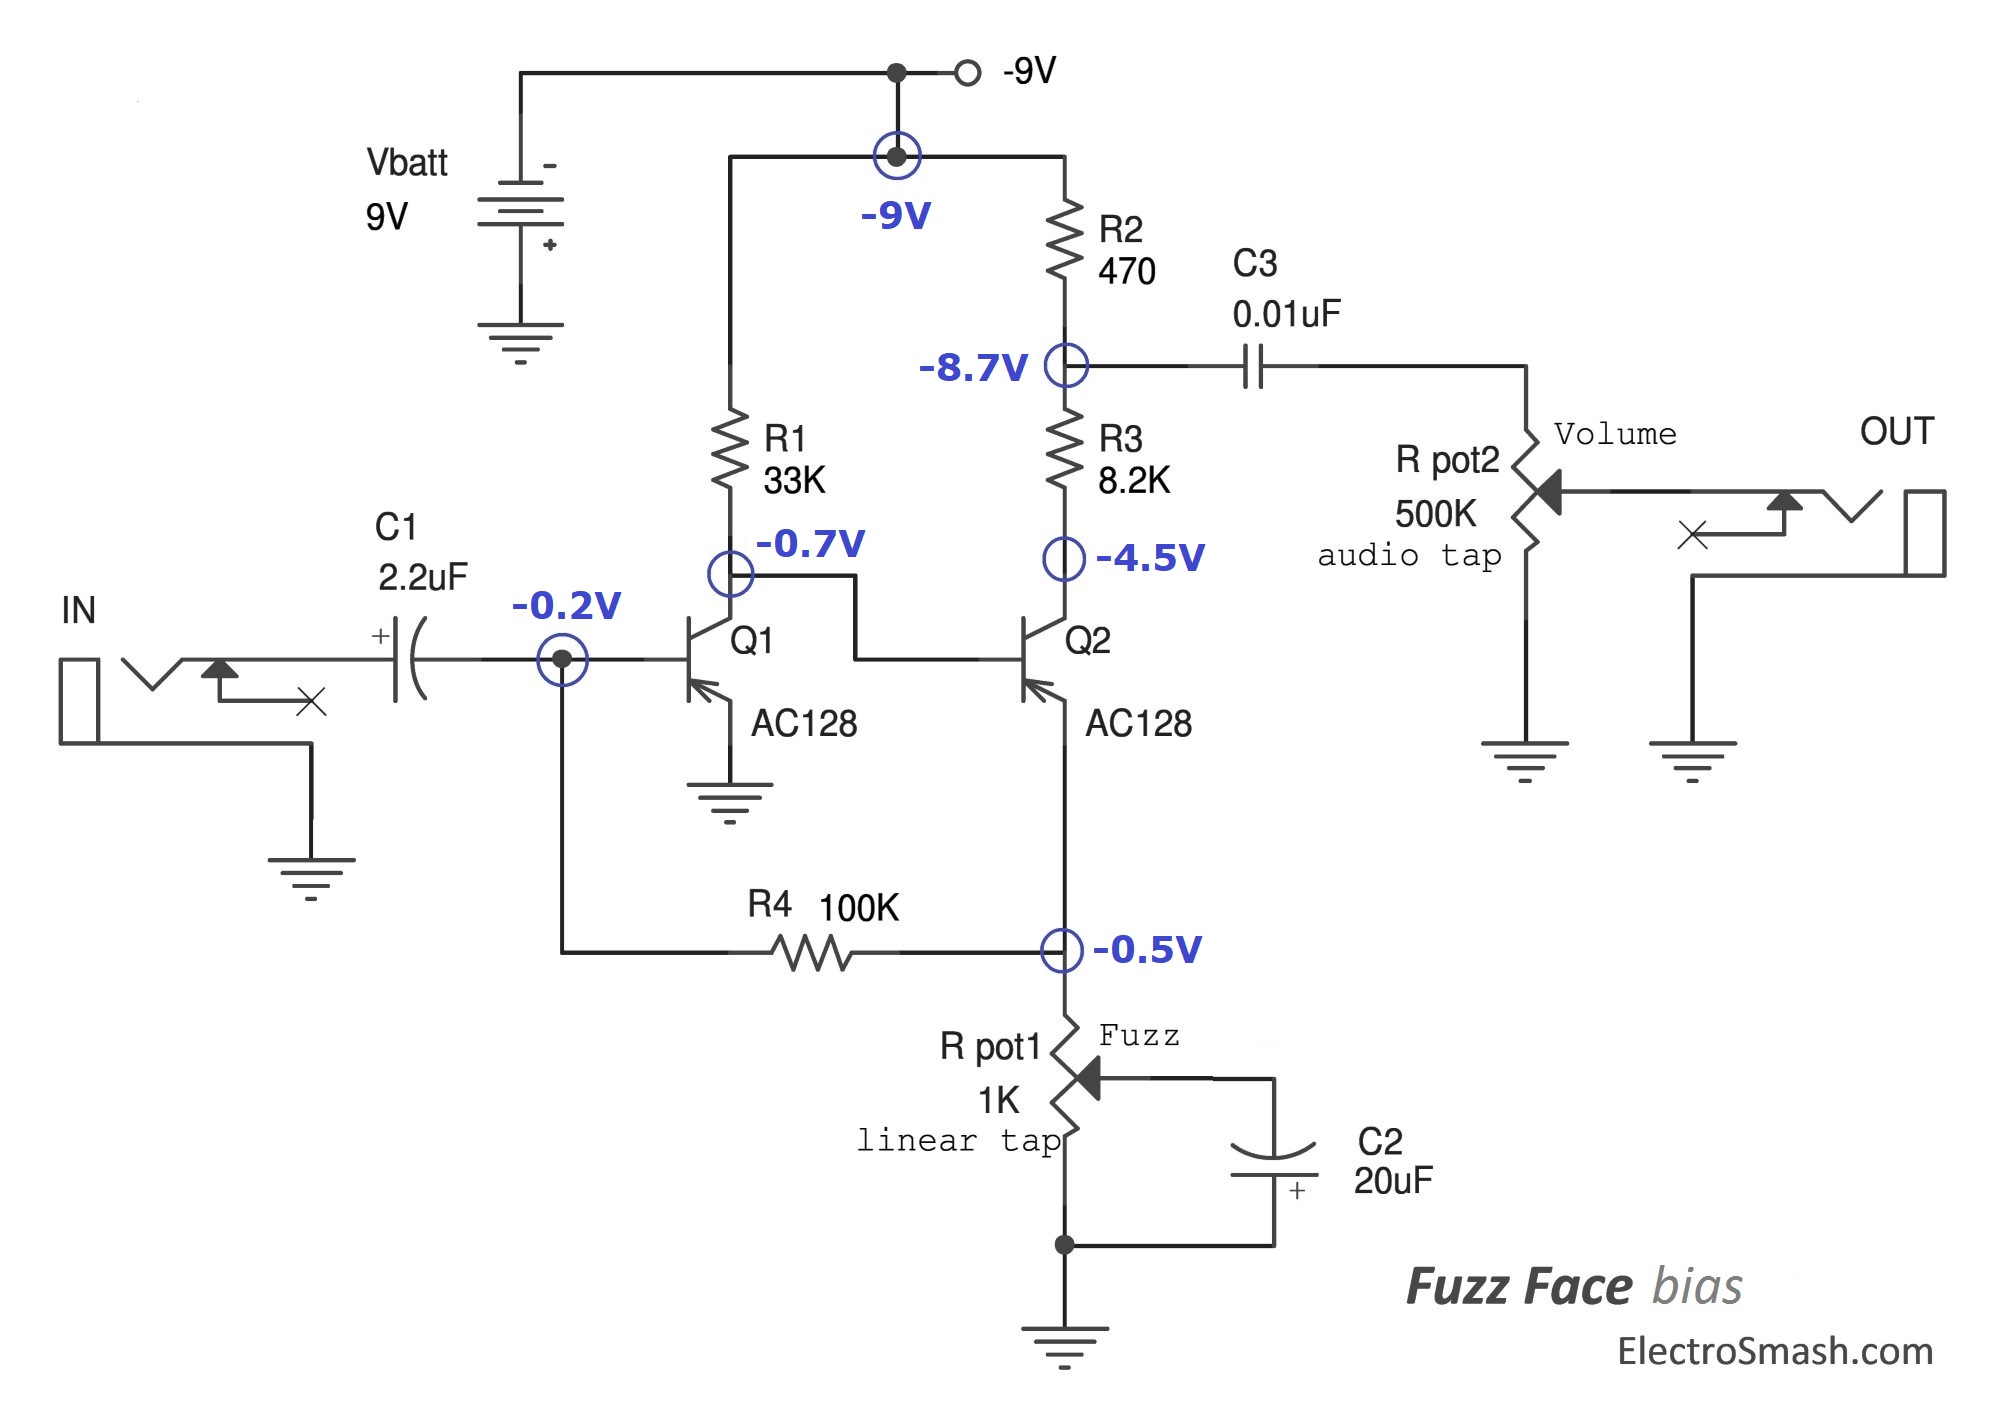 dpdt switch for with Fuzz Face on Fuzz Face besides Switch Basics additionally Swm DA W as well 226119 together with Peeco E Series Flow Switch.